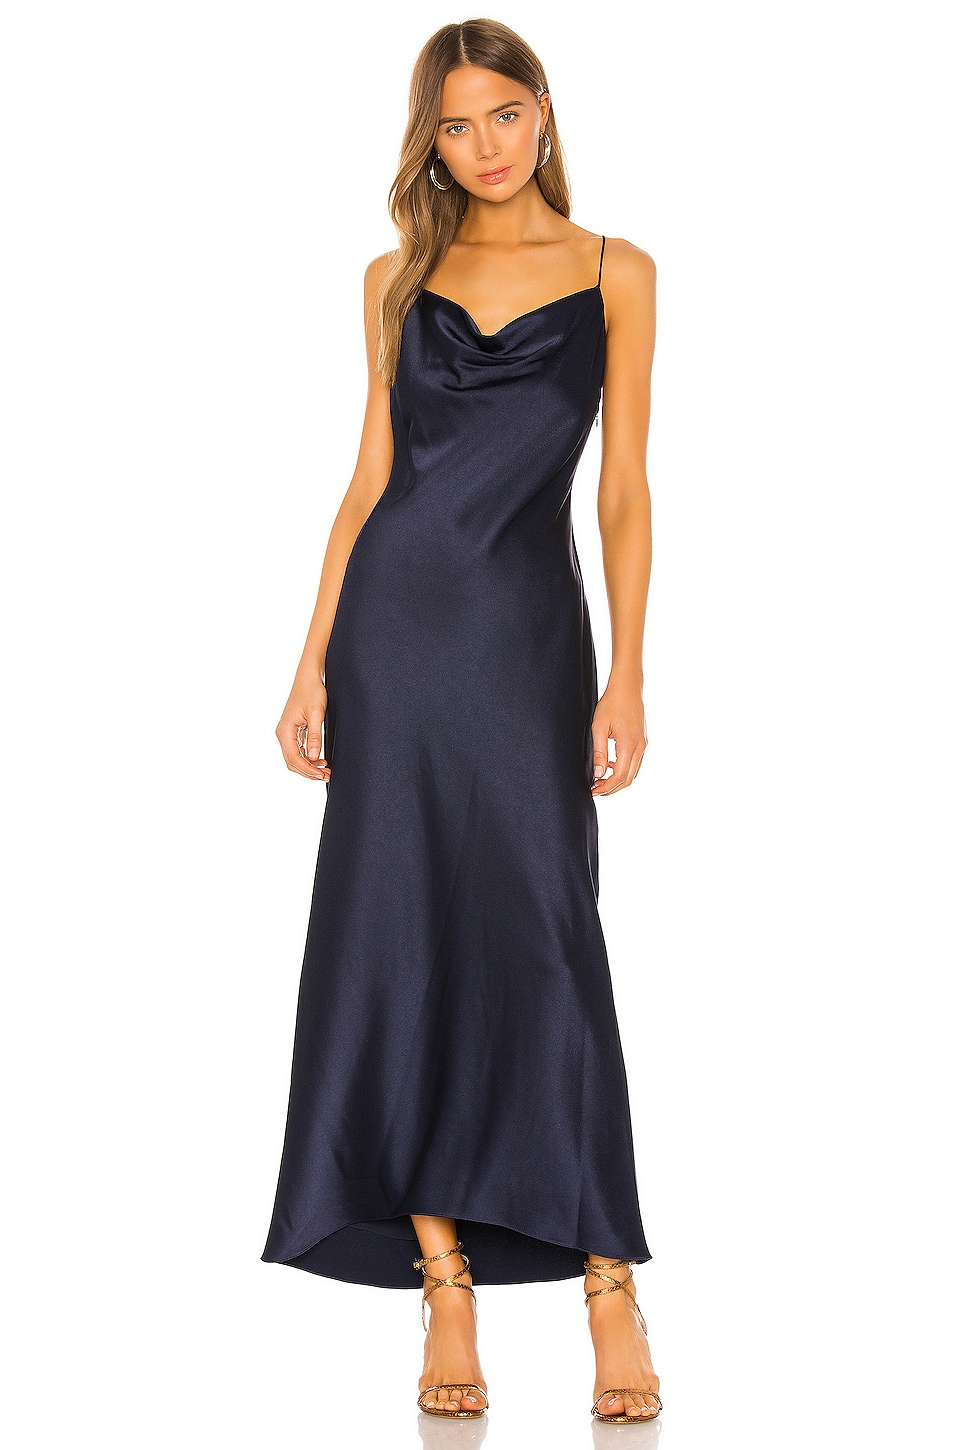 Teien Maxi Dress HEMANT AND NANDITA CA$ 708.07 - How To Be ...